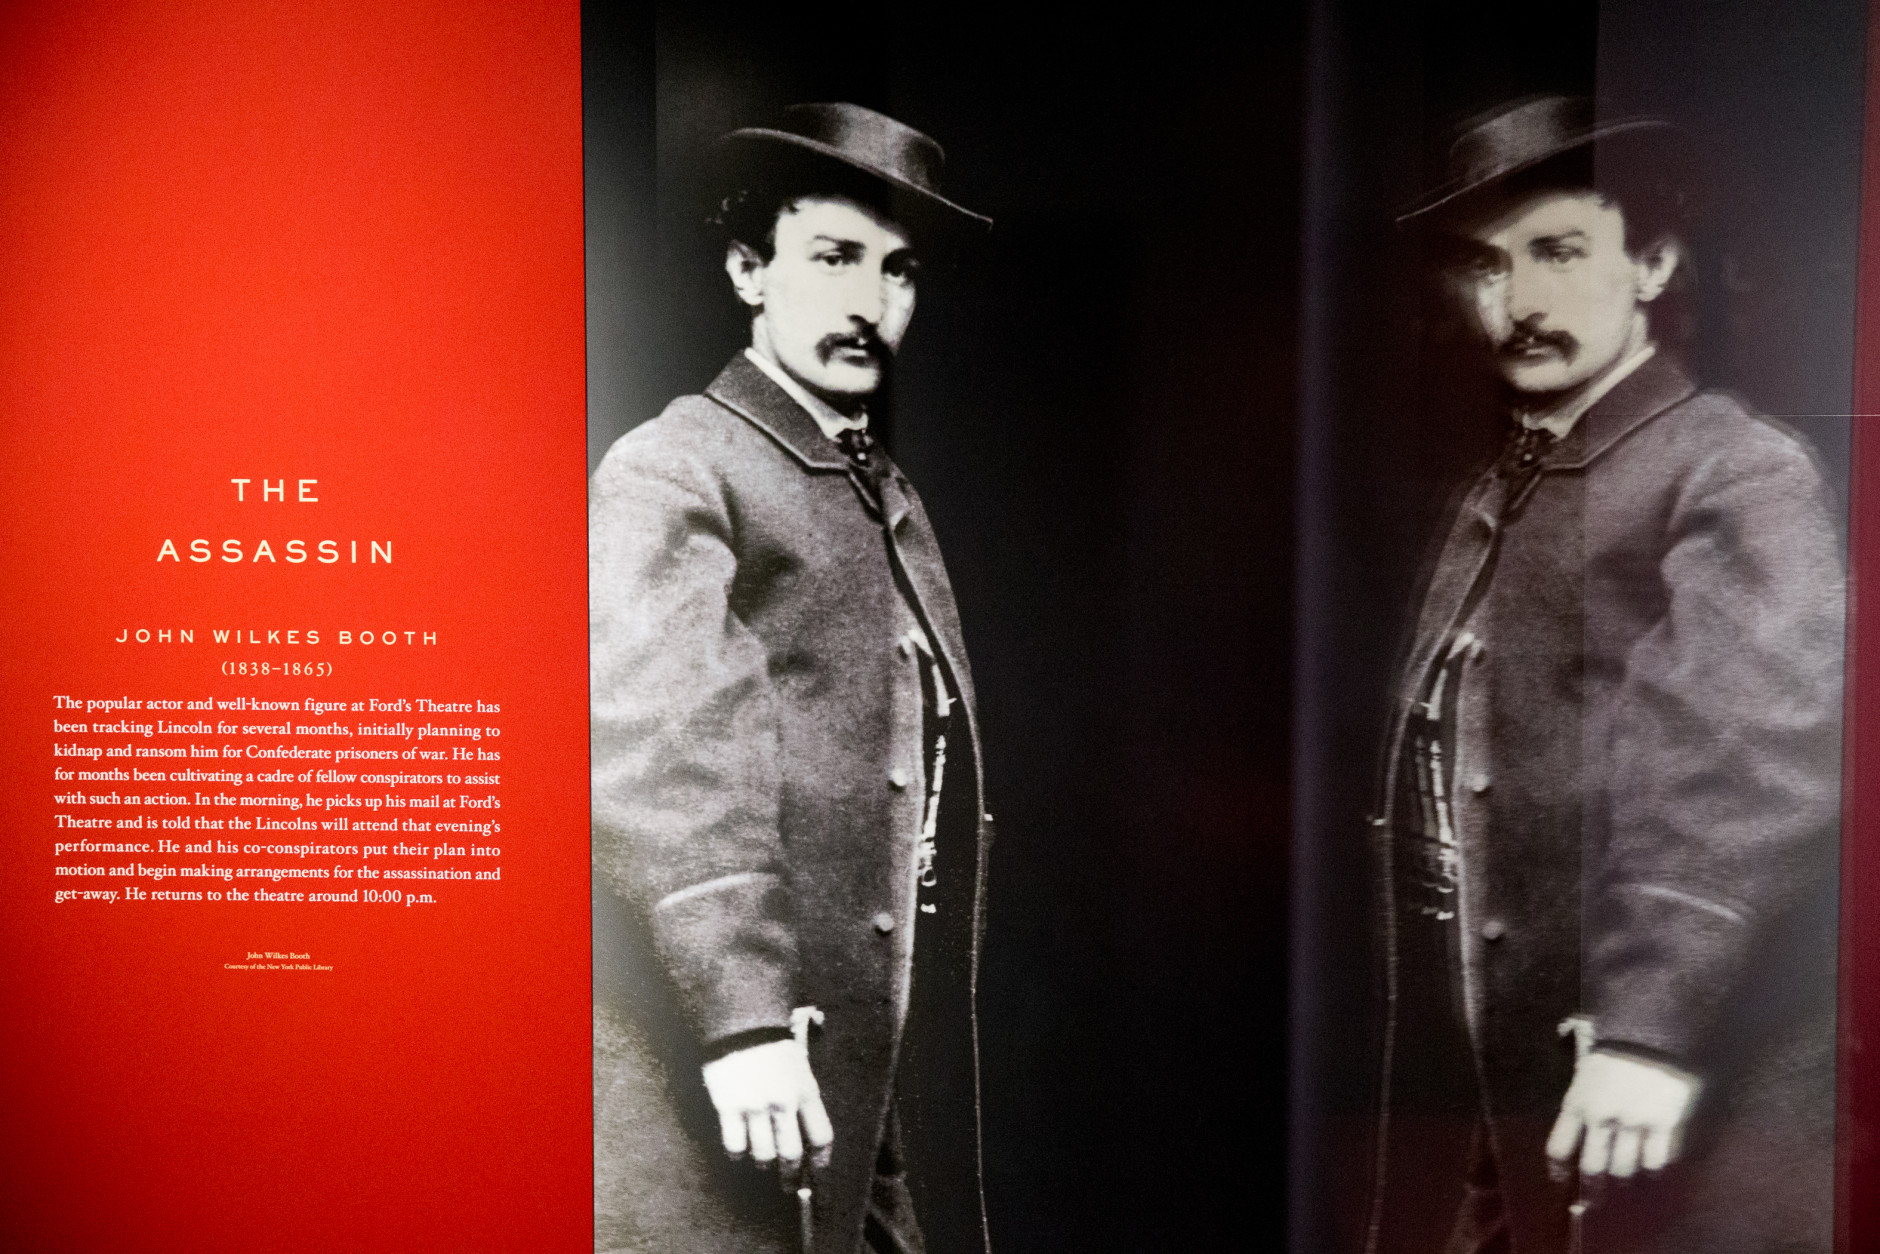 """A large photograph depicting President Abraham Lincoln's assassin John Wilkes Booth is displayed at a new exhibit entitled """"Silent Witnesses: Artifacts of the Lincoln Assassination"""" Tuesday, March 17, 2015 at the Ford's Center for Education and Leadership across the street from the historic Ford's Theatre, in Washington. The exhibit is open to the public March 23rd to May 25th and coincides with the 150th anniversary of the Lincoln assassination on April 14th. (AP Photo/Andrew Harnik)"""